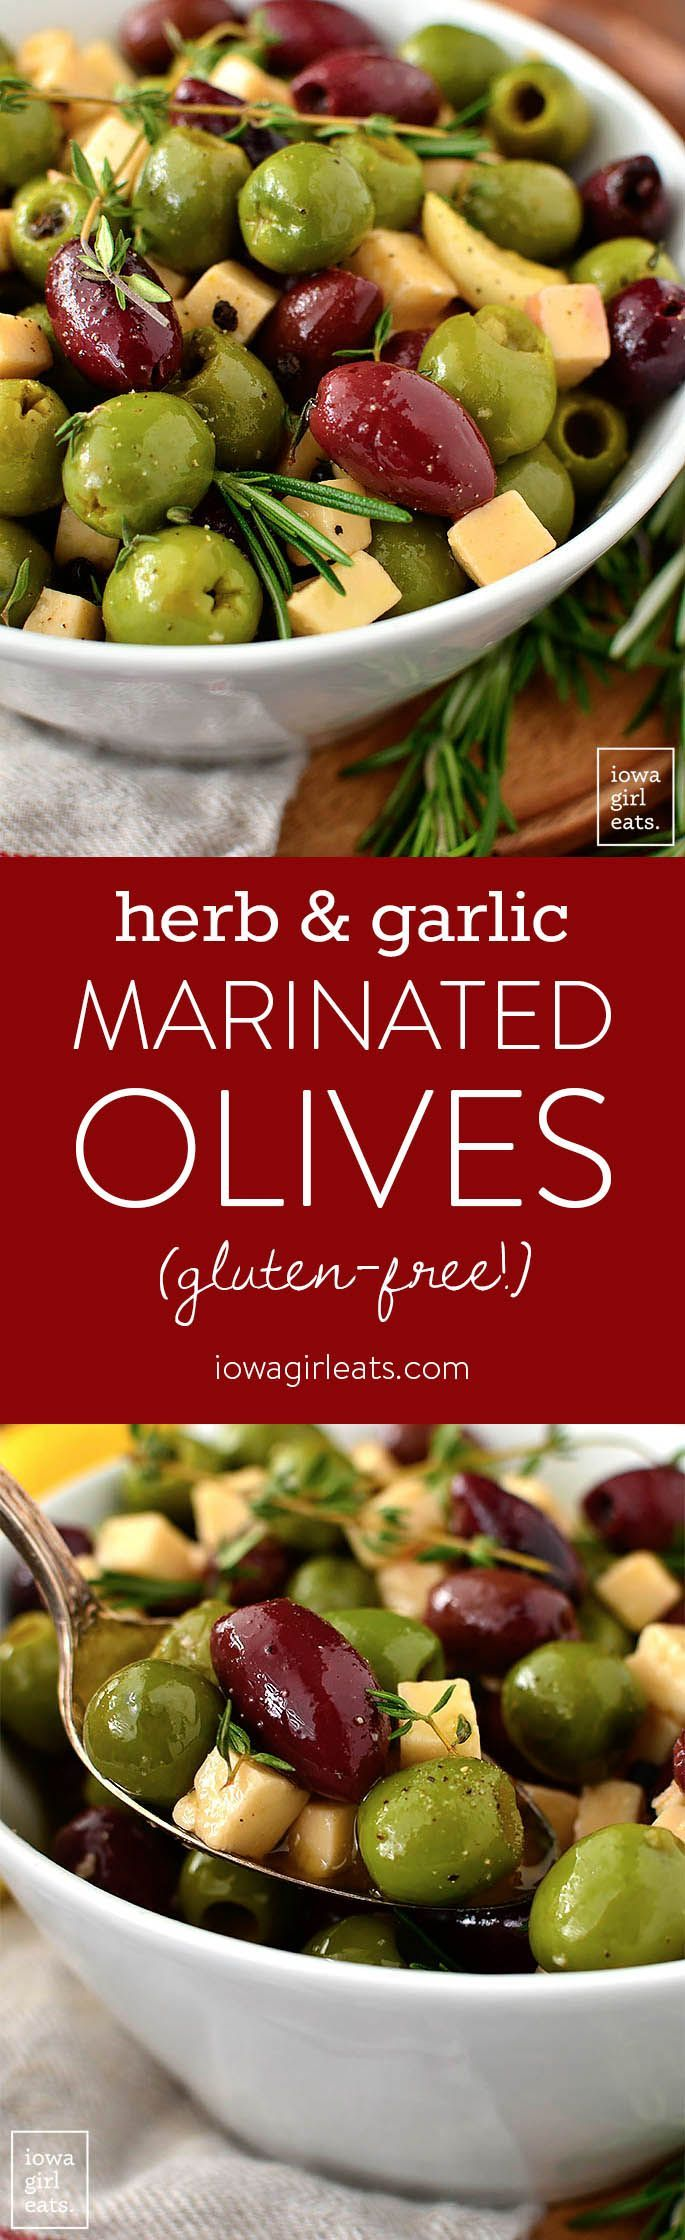 Herb and Garlic Marinated Olives are an easy yet impressive, gluten-free appetizer recipe you can whip together several days ahead of a party or get together. | iowagirleats.com #glutenfree